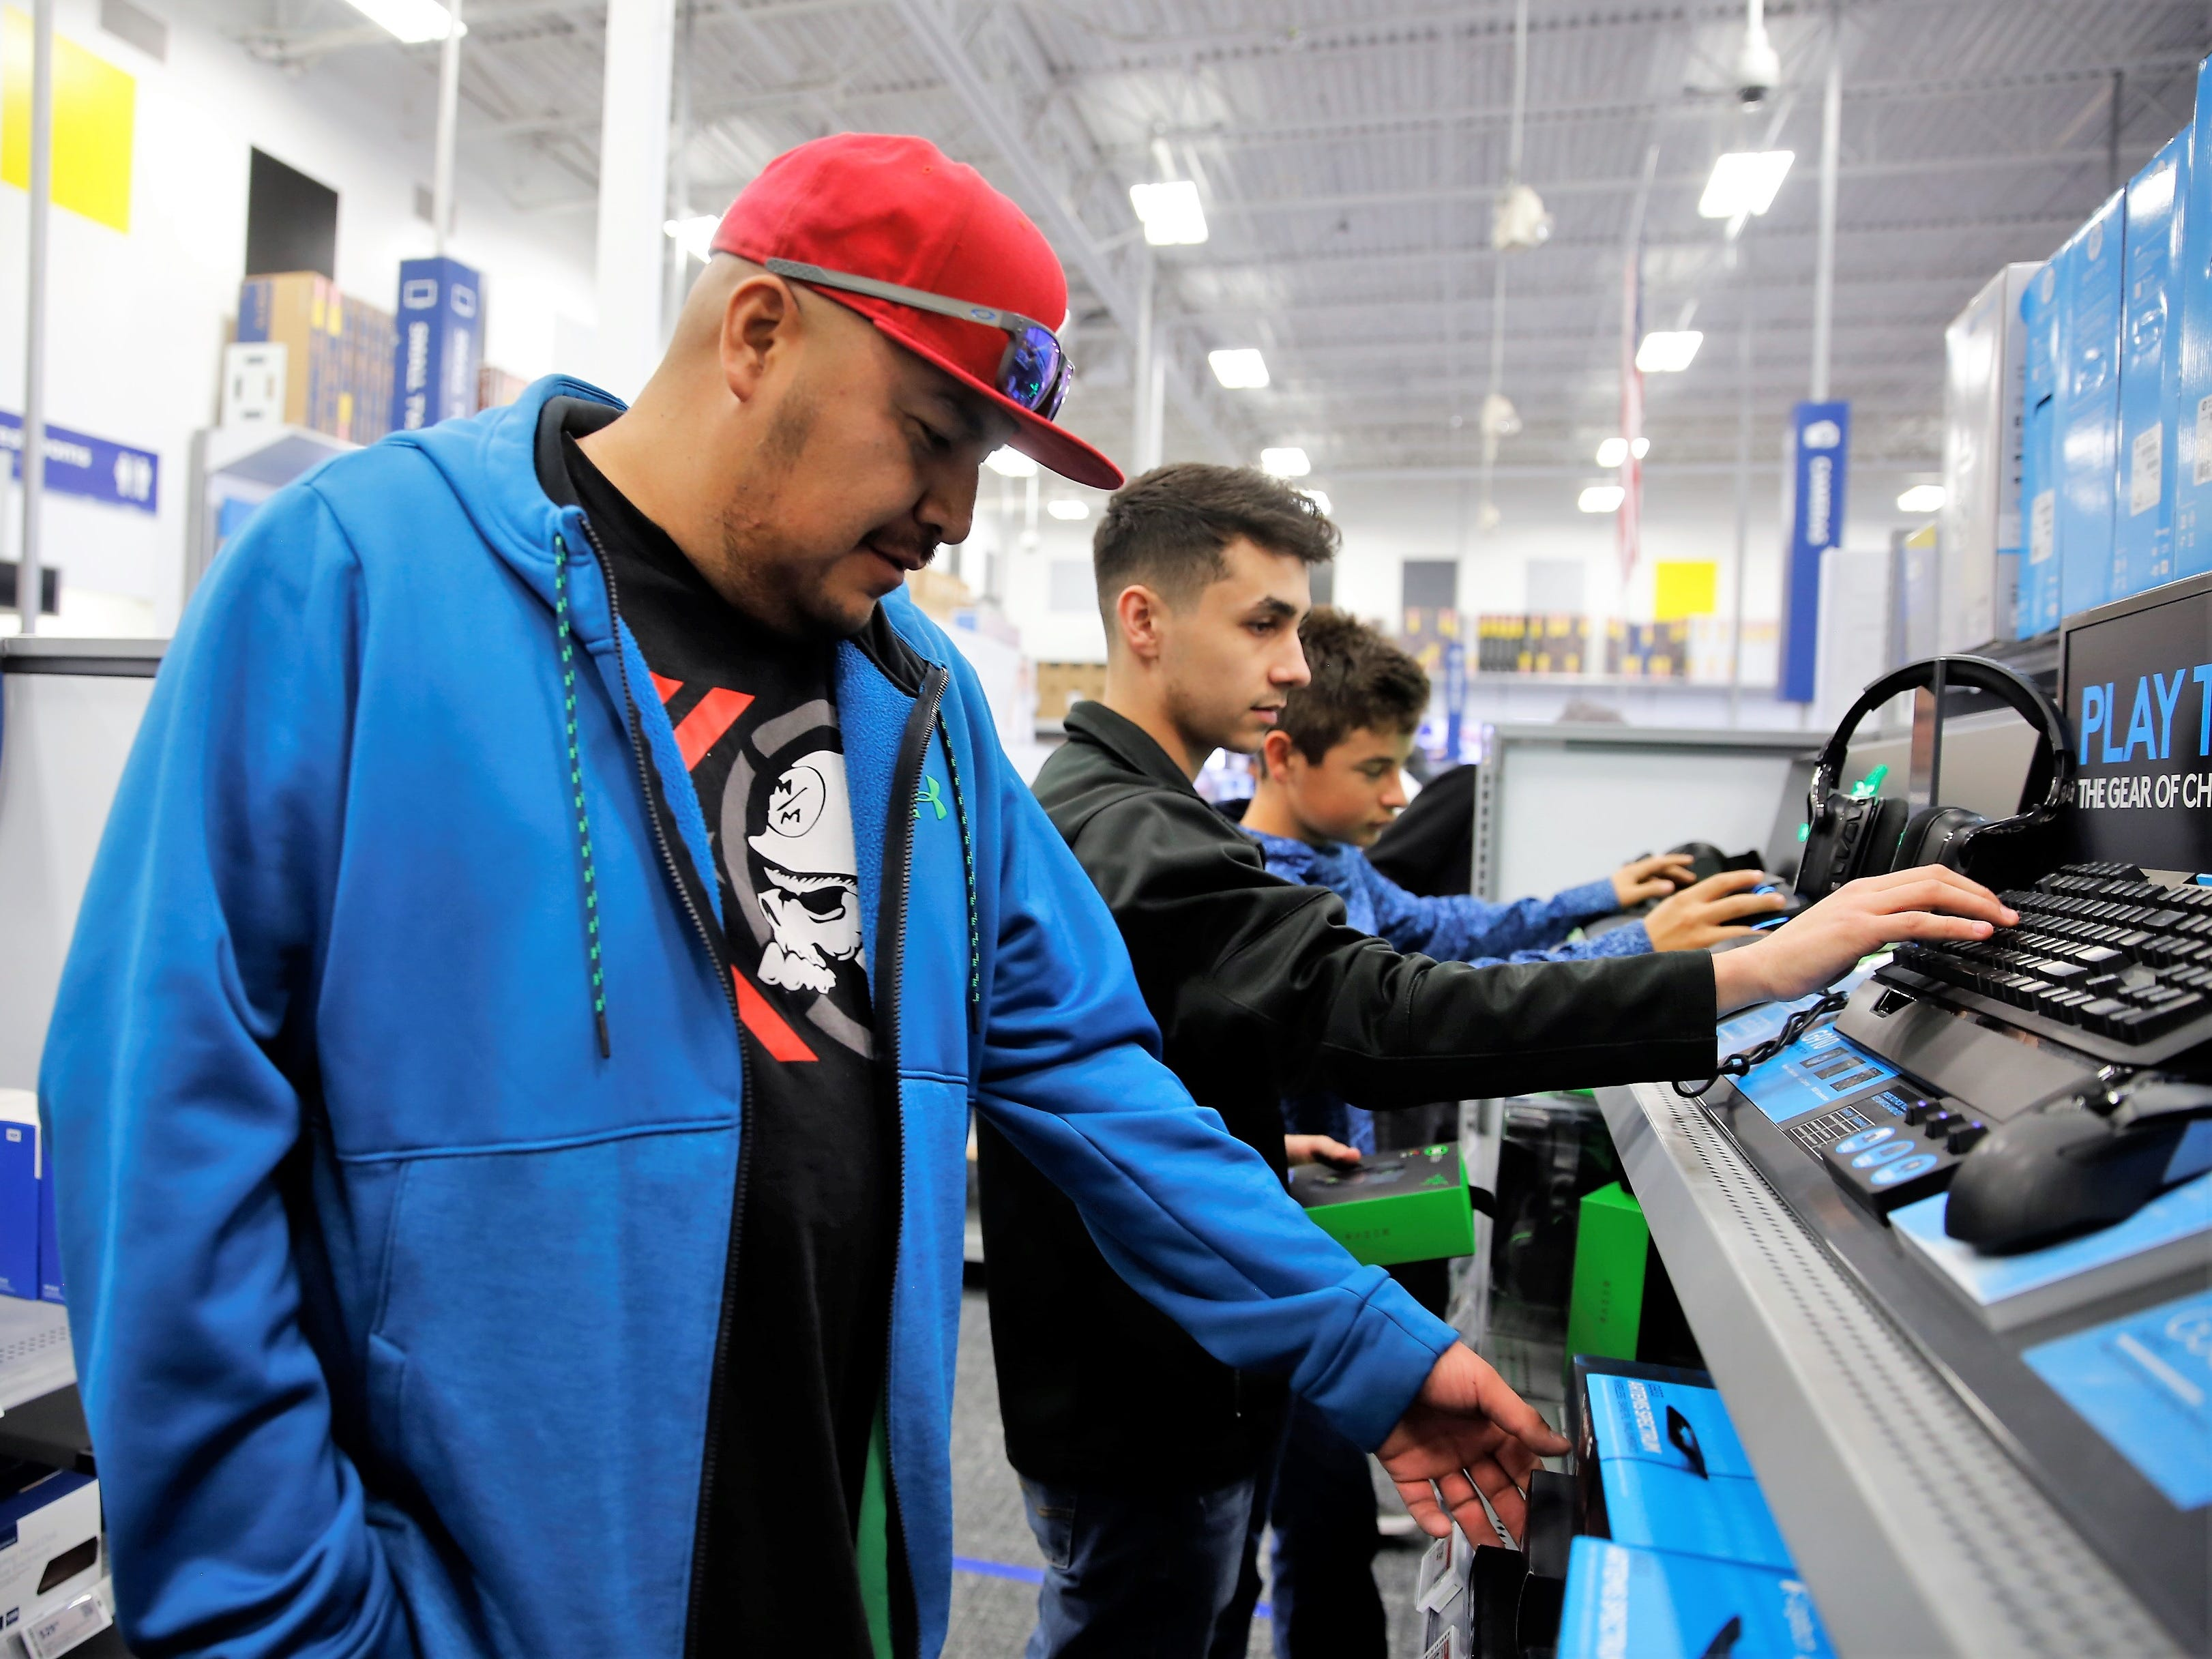 Terrence Benallie, left, Thomaslukes Florez-Mansi, center, and Estevan Florez-Mansi, right, look at personal computer accessories Friday afternoon at Best Buy in Farmington.